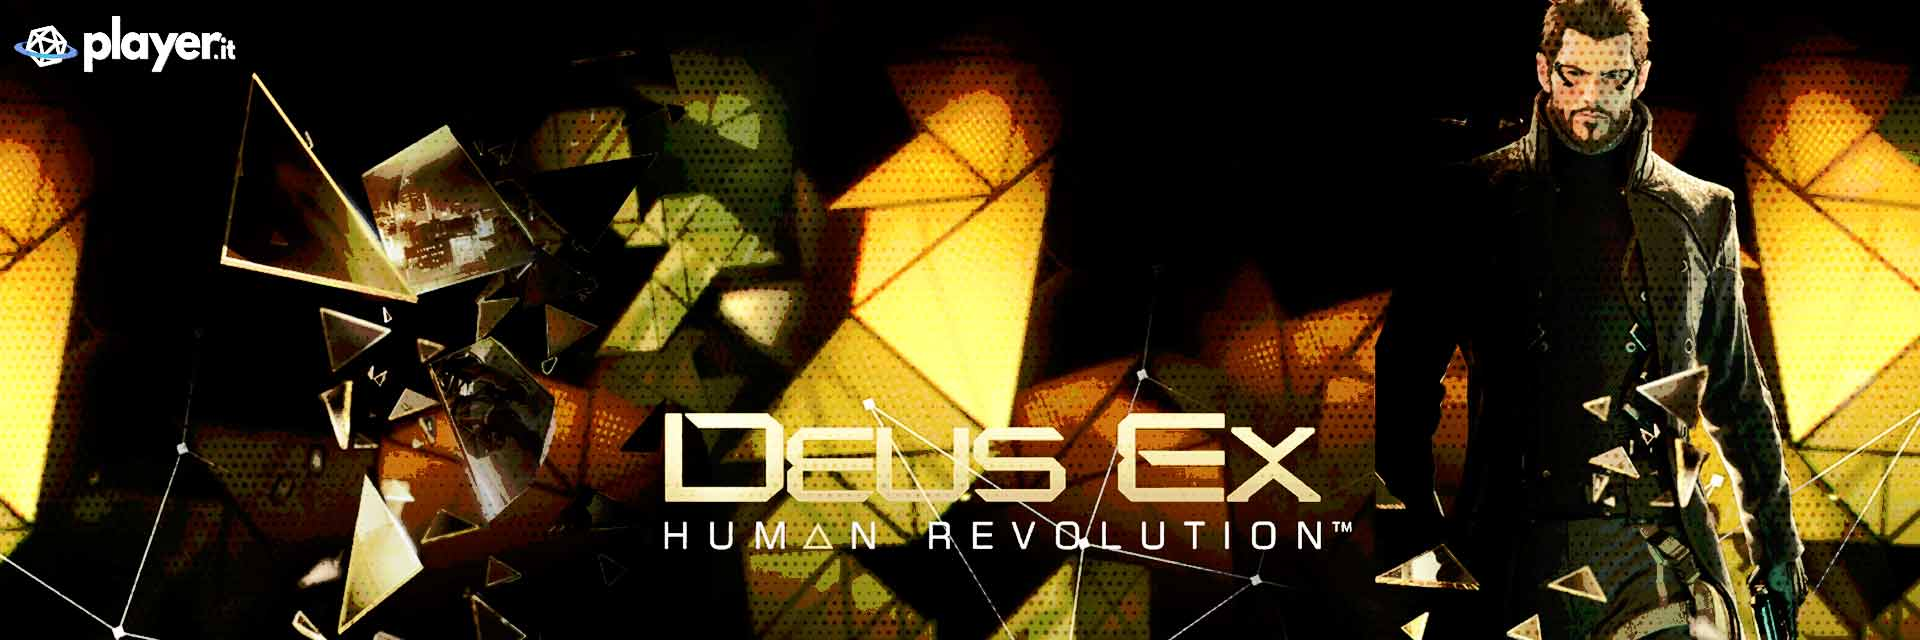 Deus Ex: Human Revolution wallpaper in hd